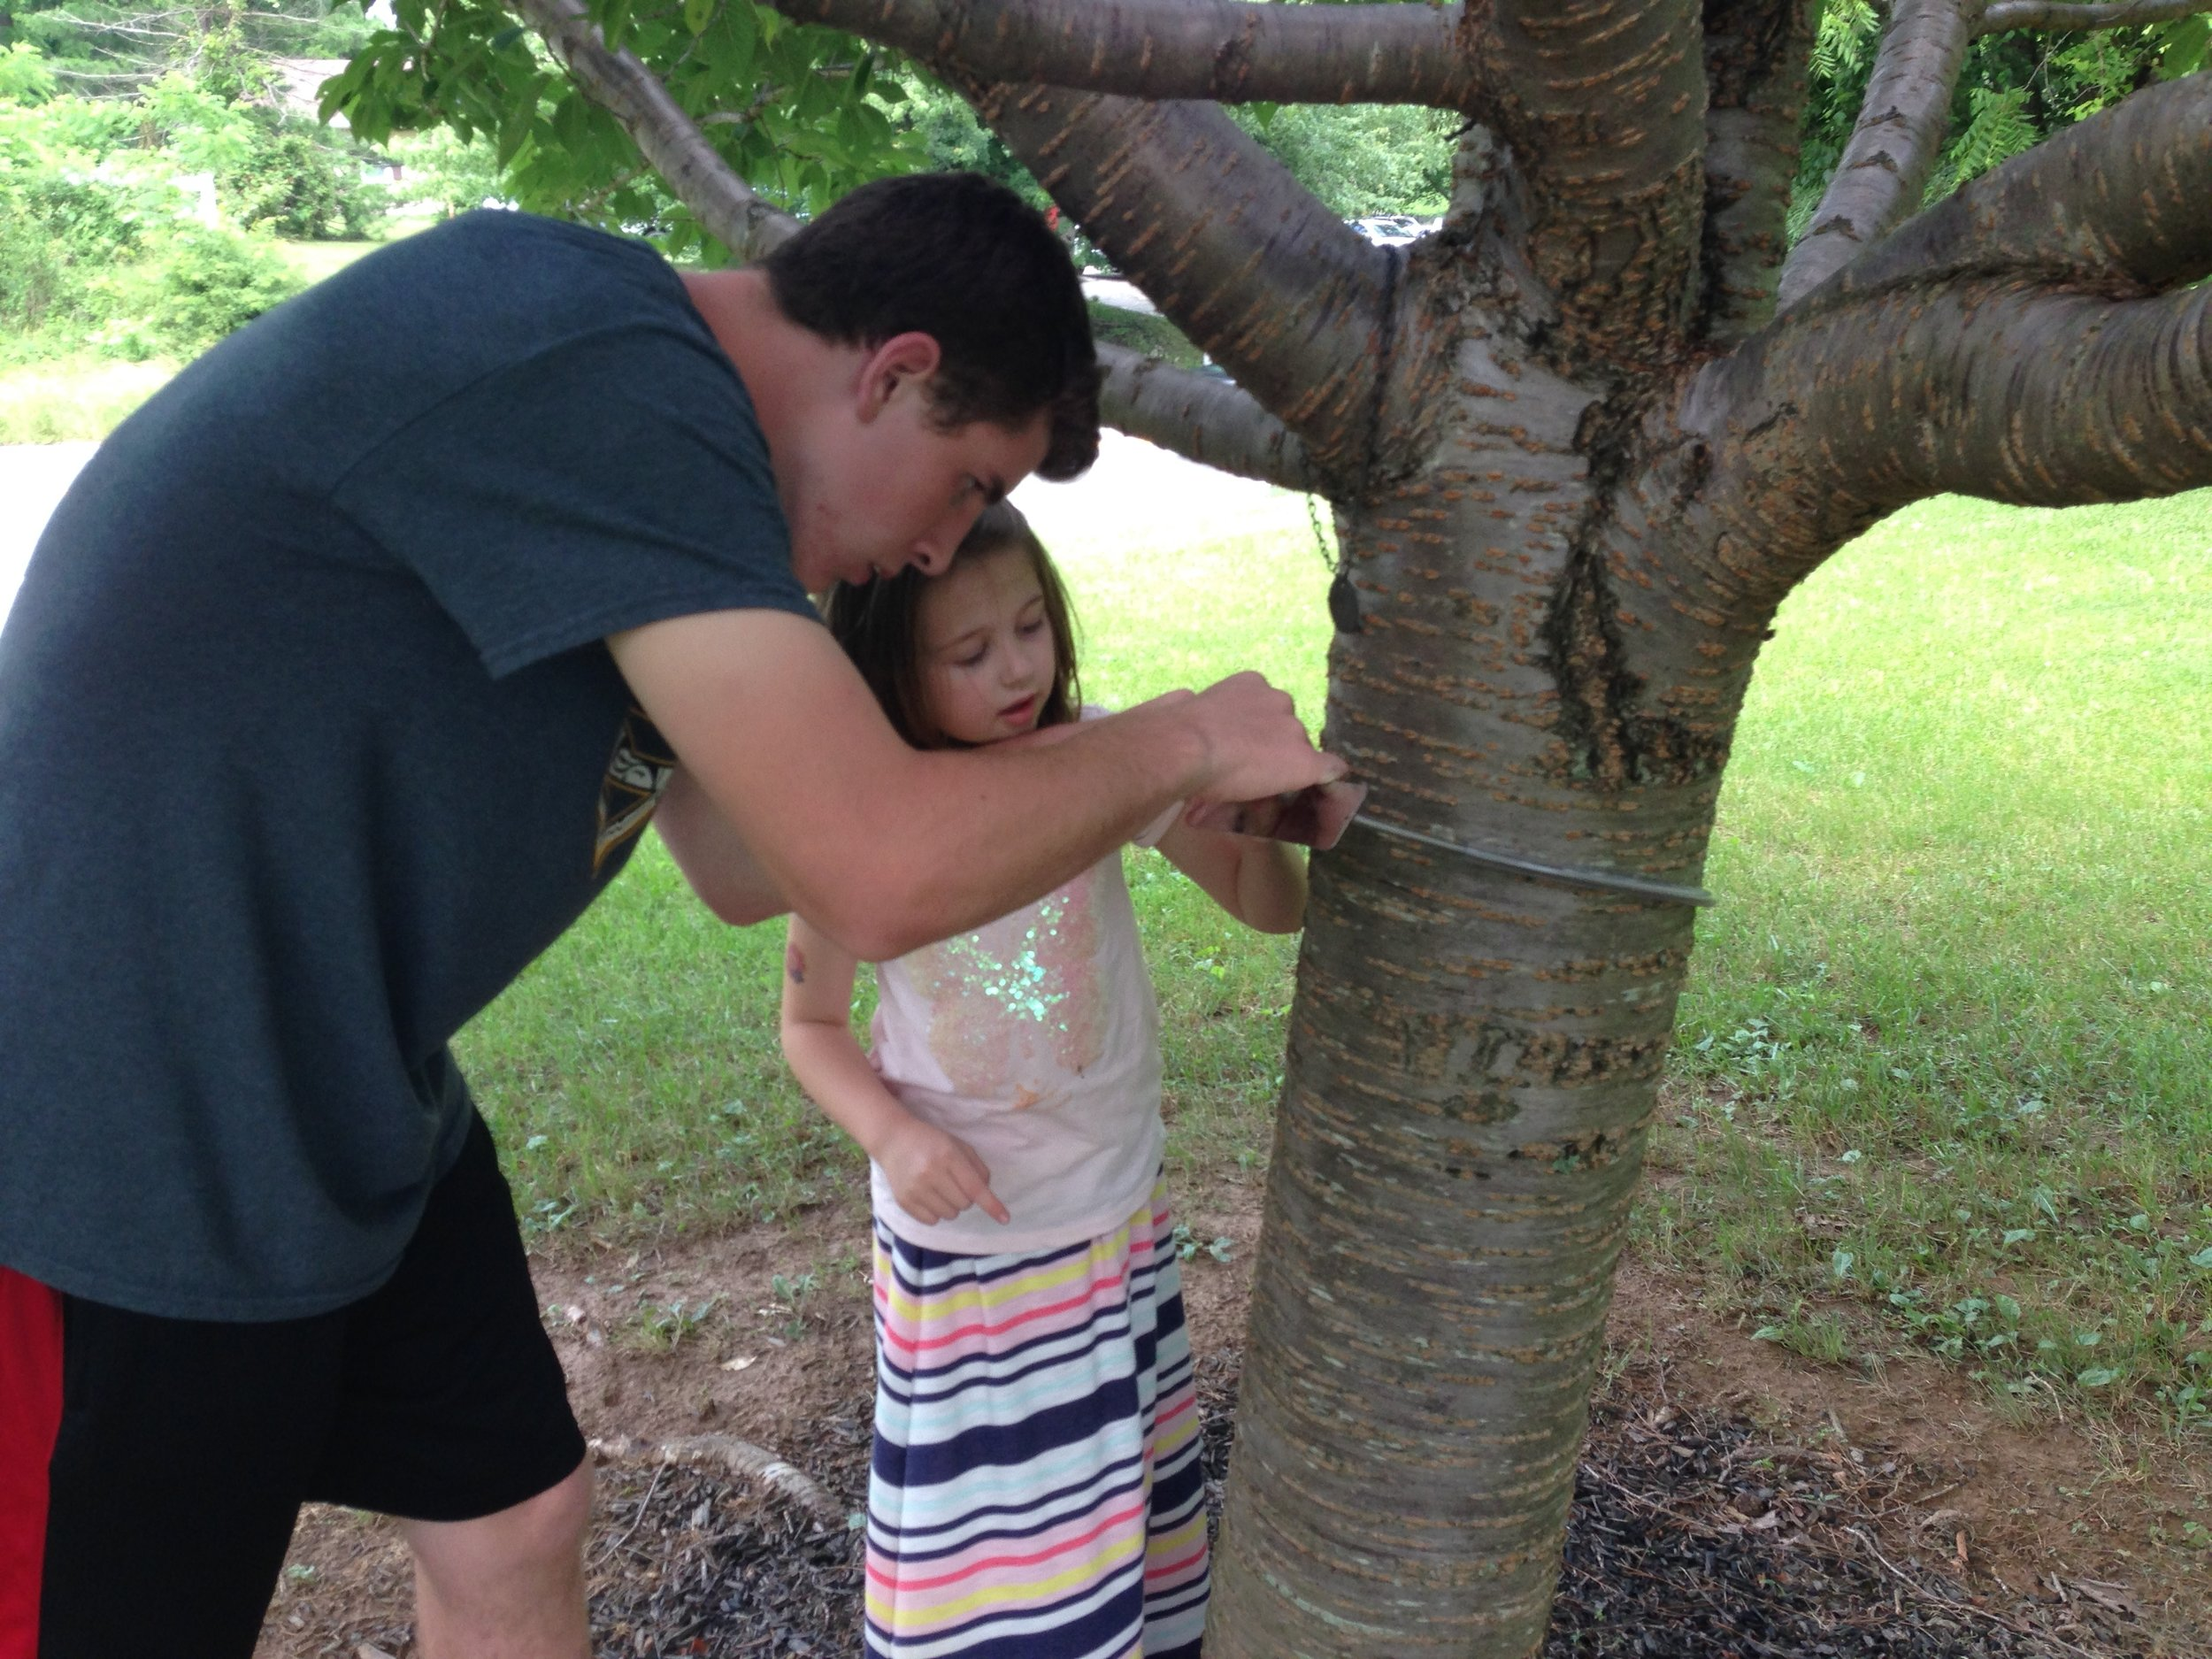 Placing a tree hugger on one of the Kwanzan cherry trees in Cedar Lane Park off of Route 108.